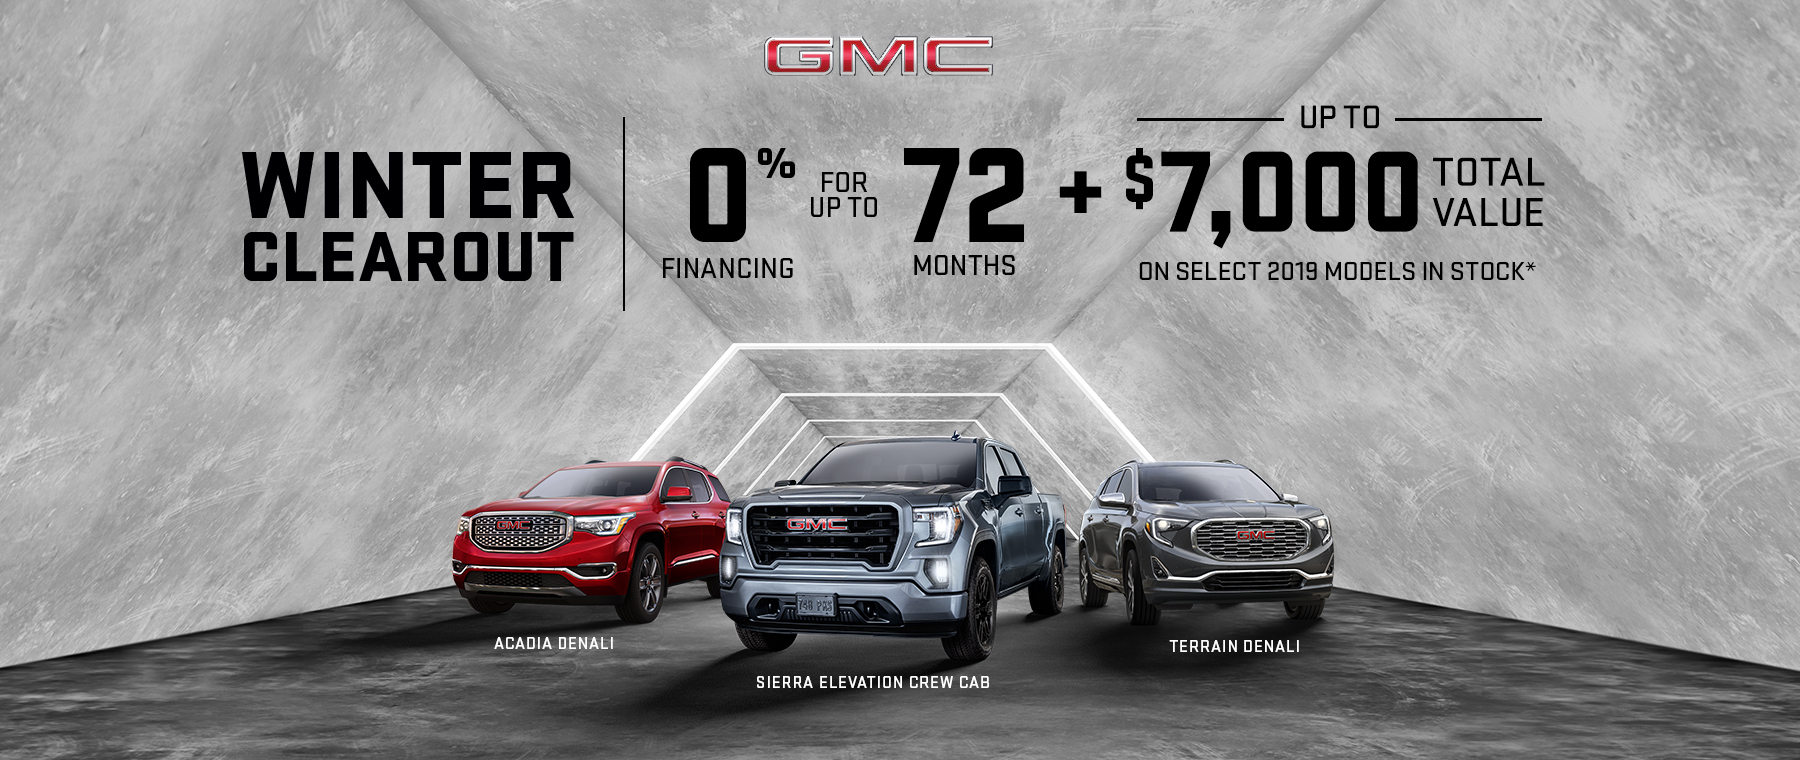 Winter Clearout 2019 GMC Multi-line